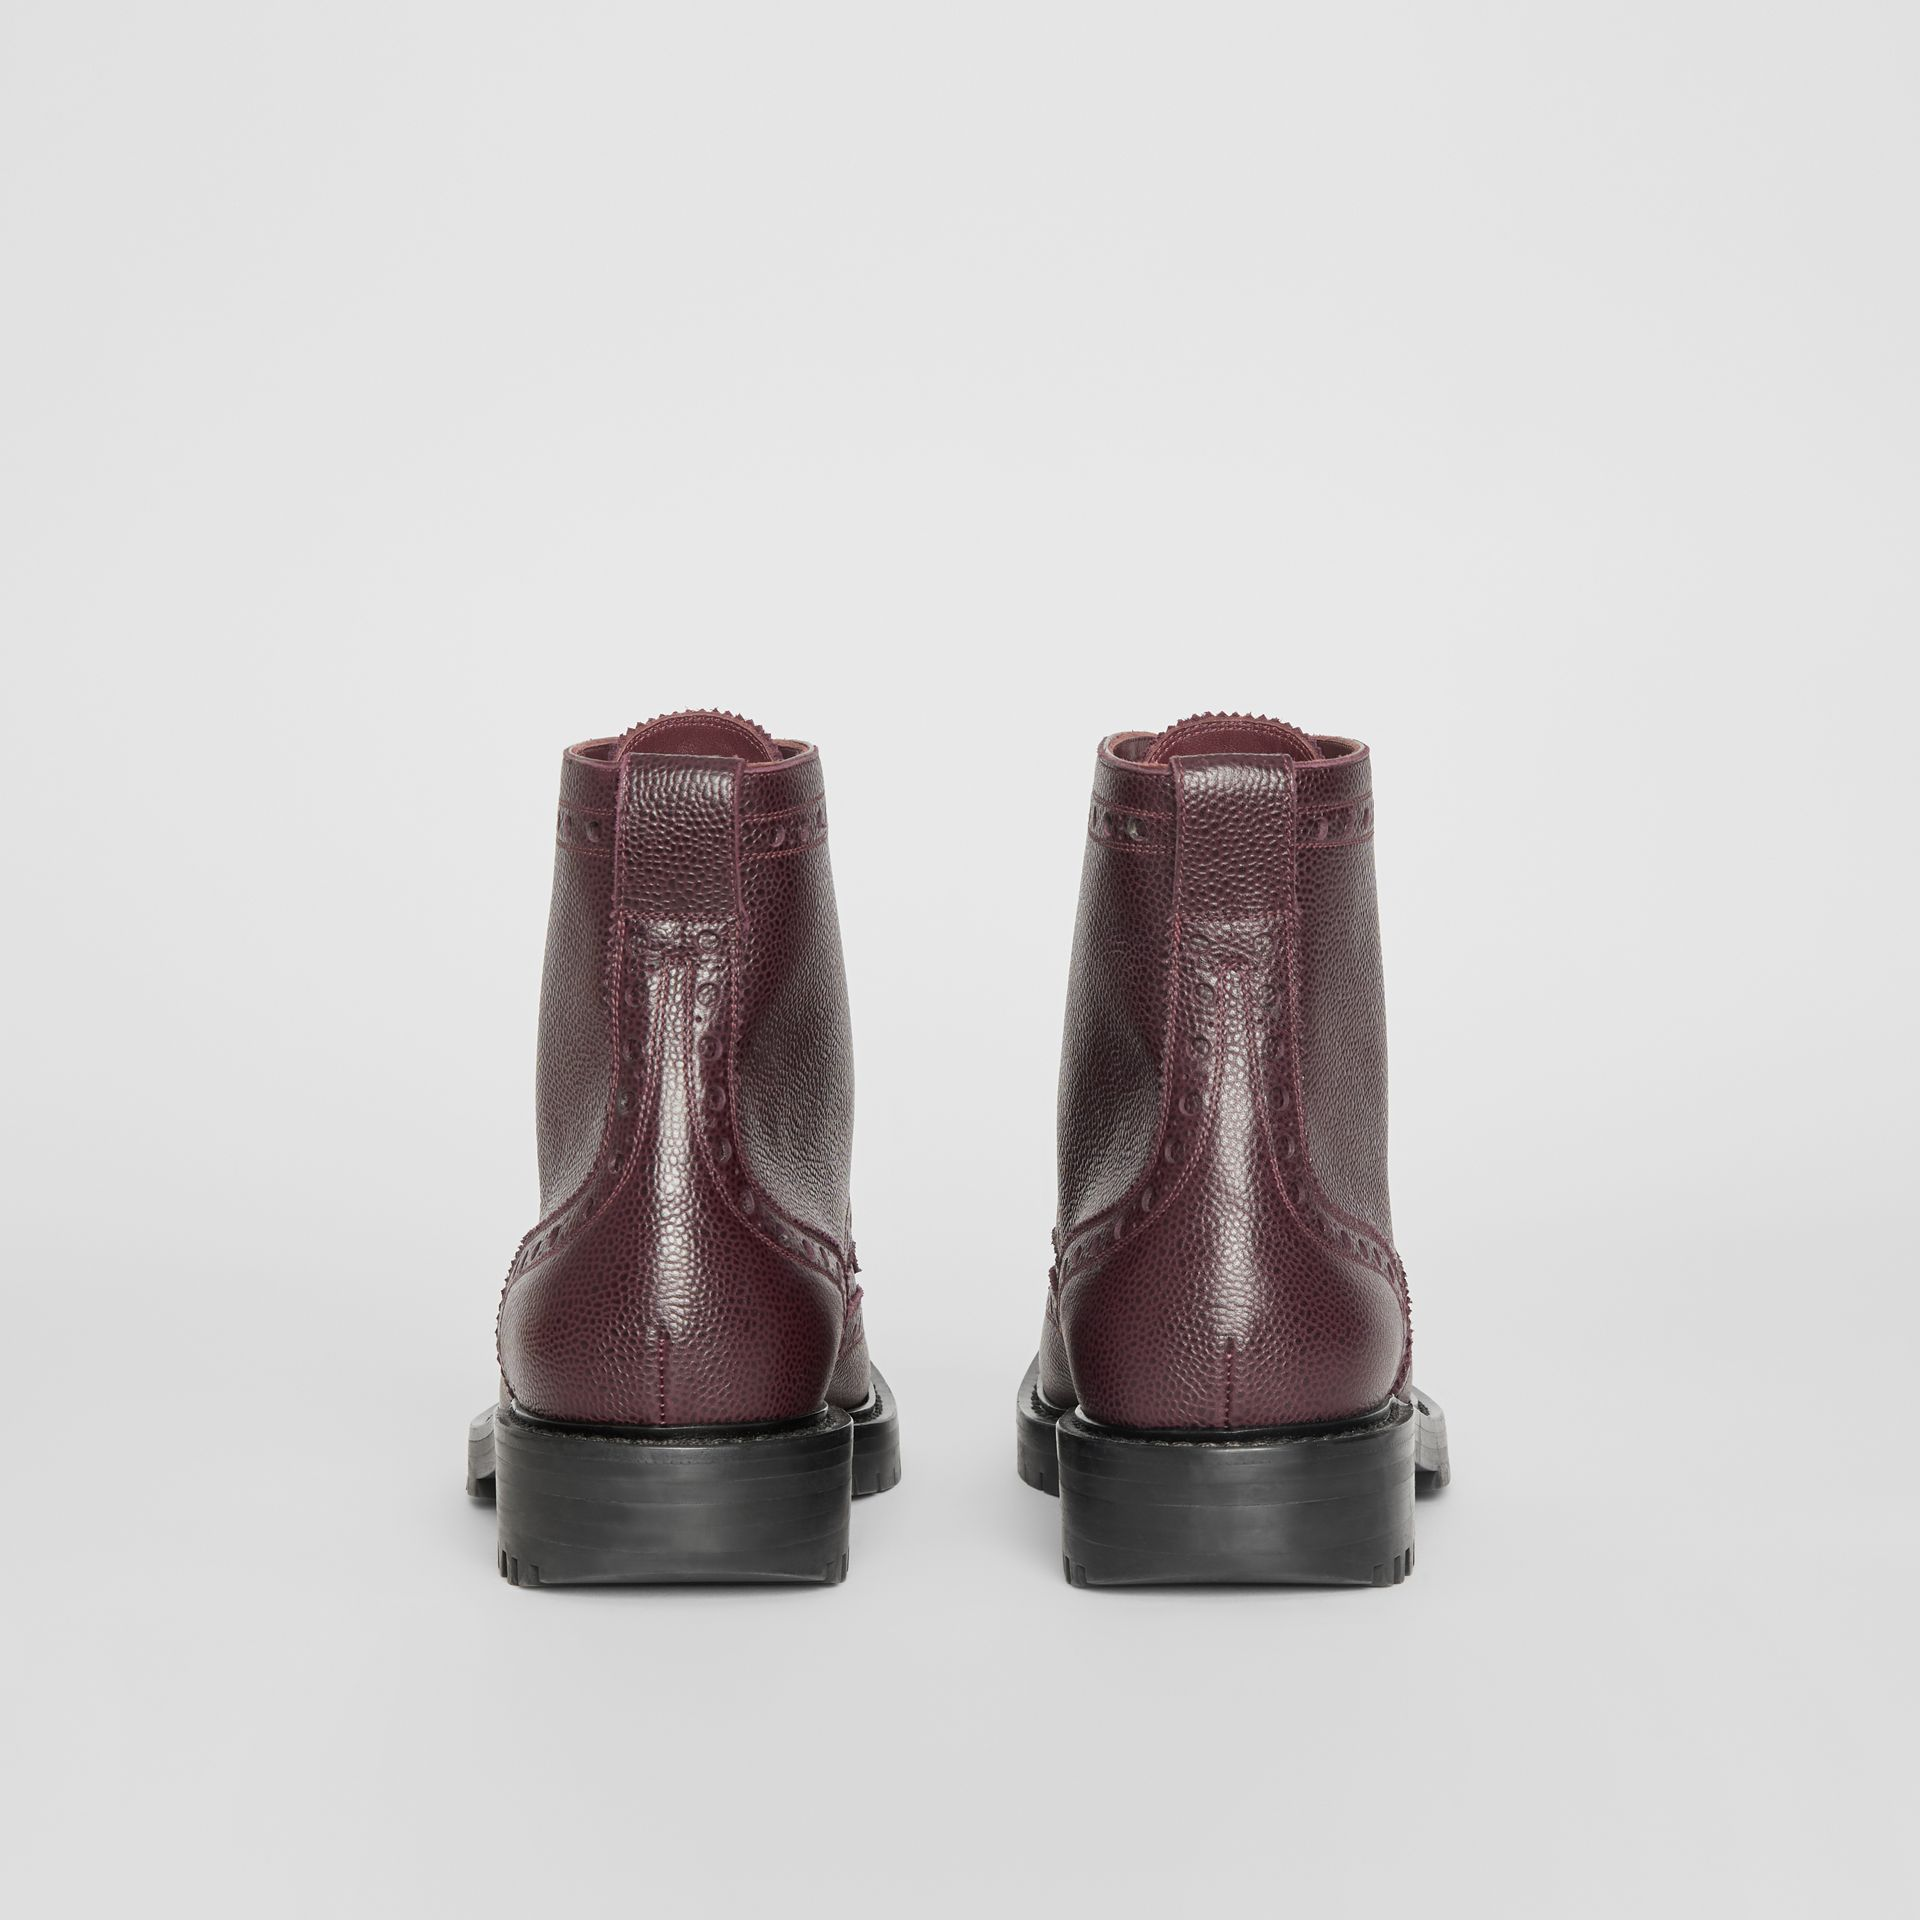 Brogue Detail Grainy Leather Boots in Bordeaux - Men | Burberry United States - gallery image 4